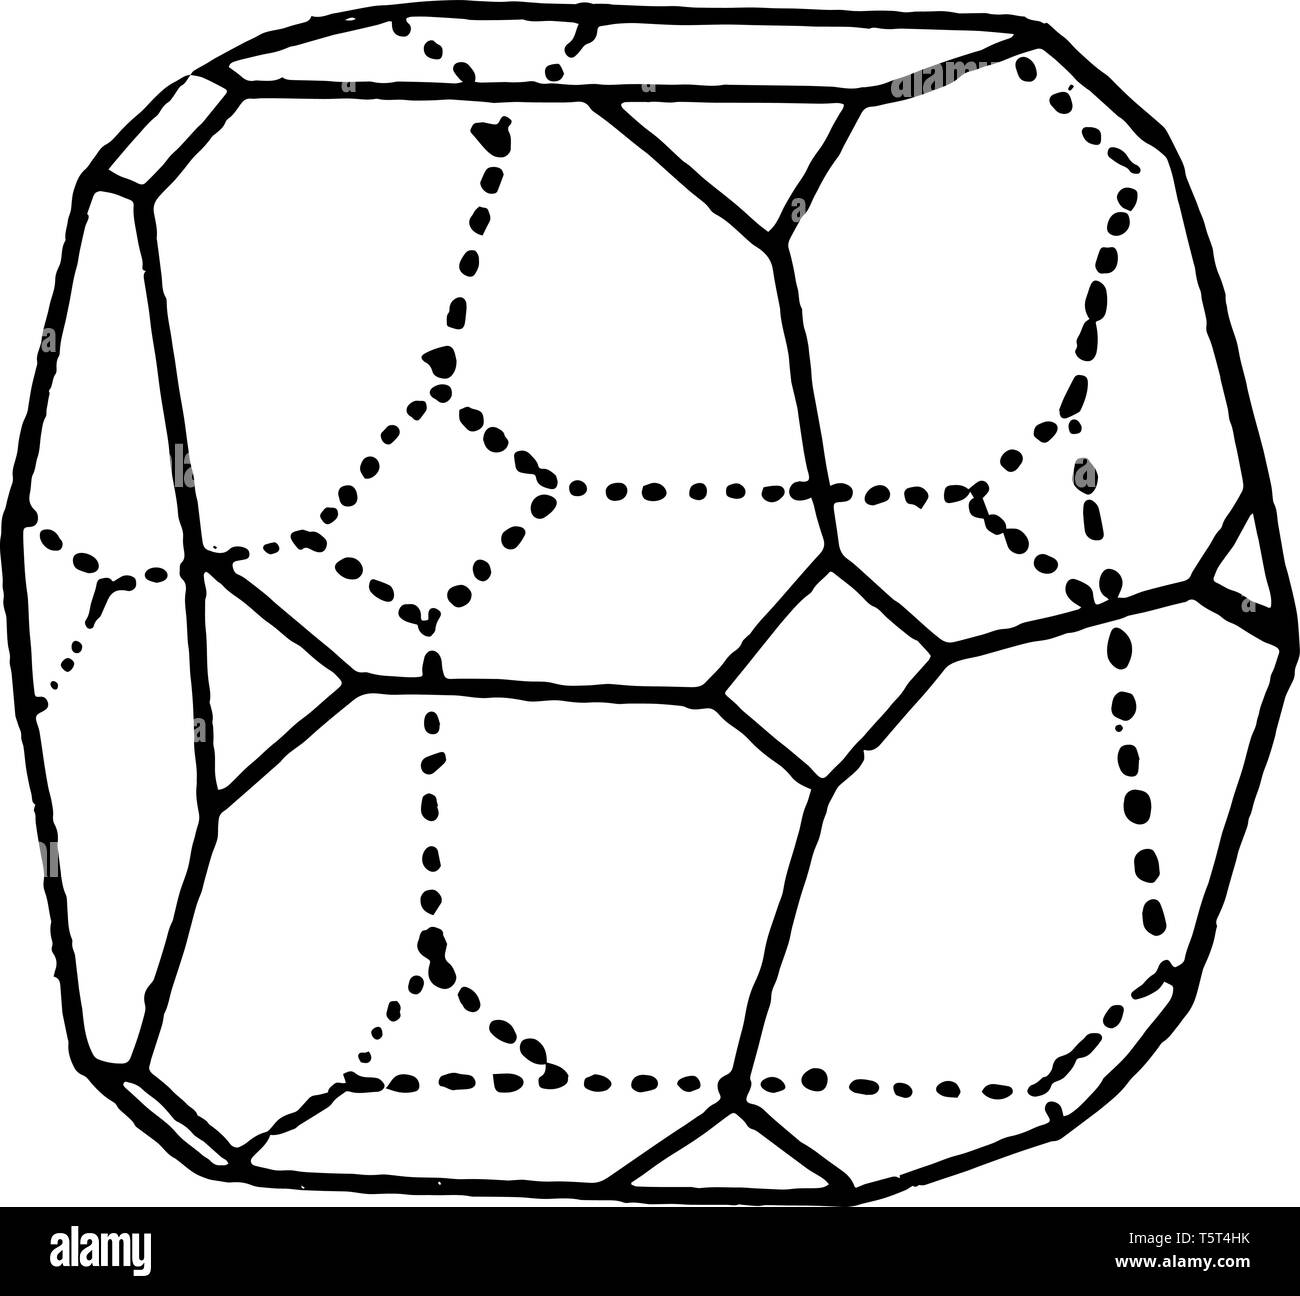 Crystallography appears in the figure in the box, vintage line drawing or engraving illustration. - Stock Vector